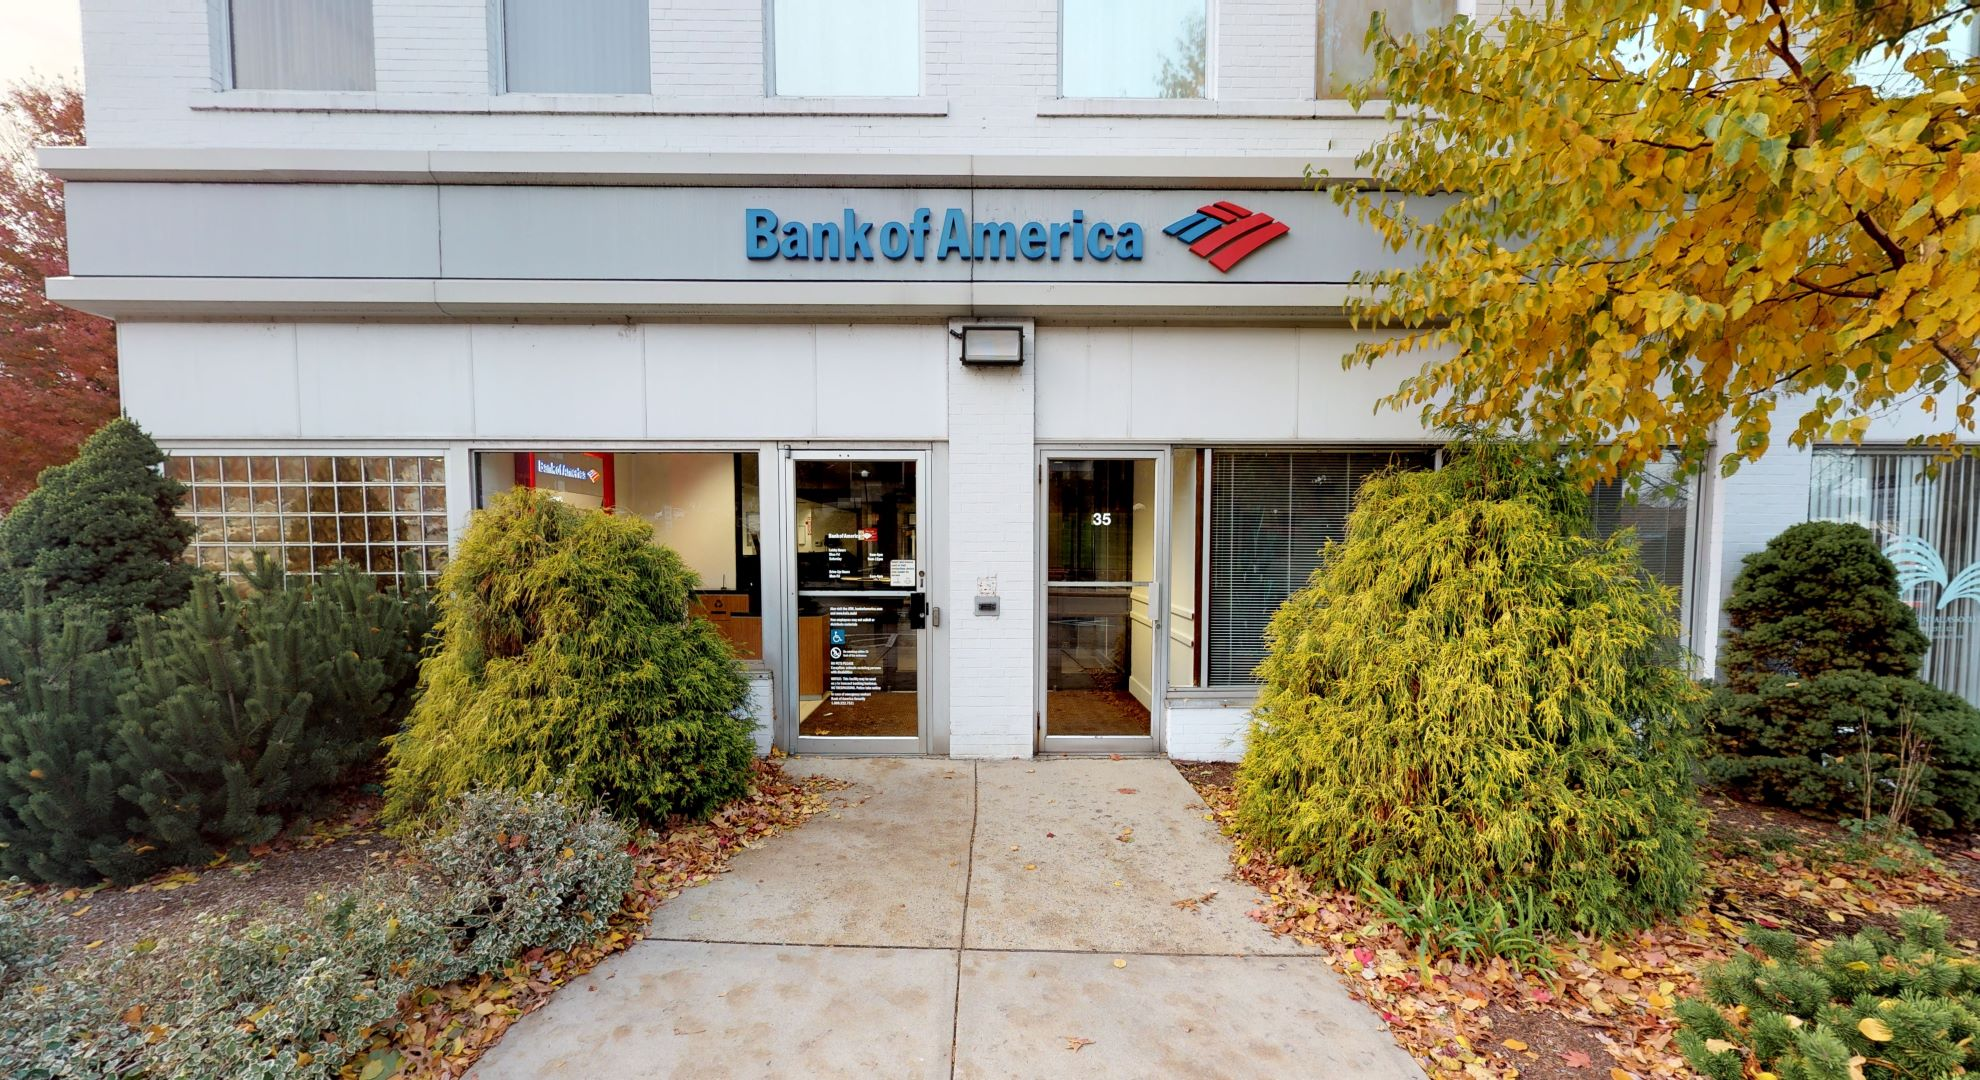 Bank of America financial center with walk-up ATM   35 Washington St, Wellesley, MA 02481